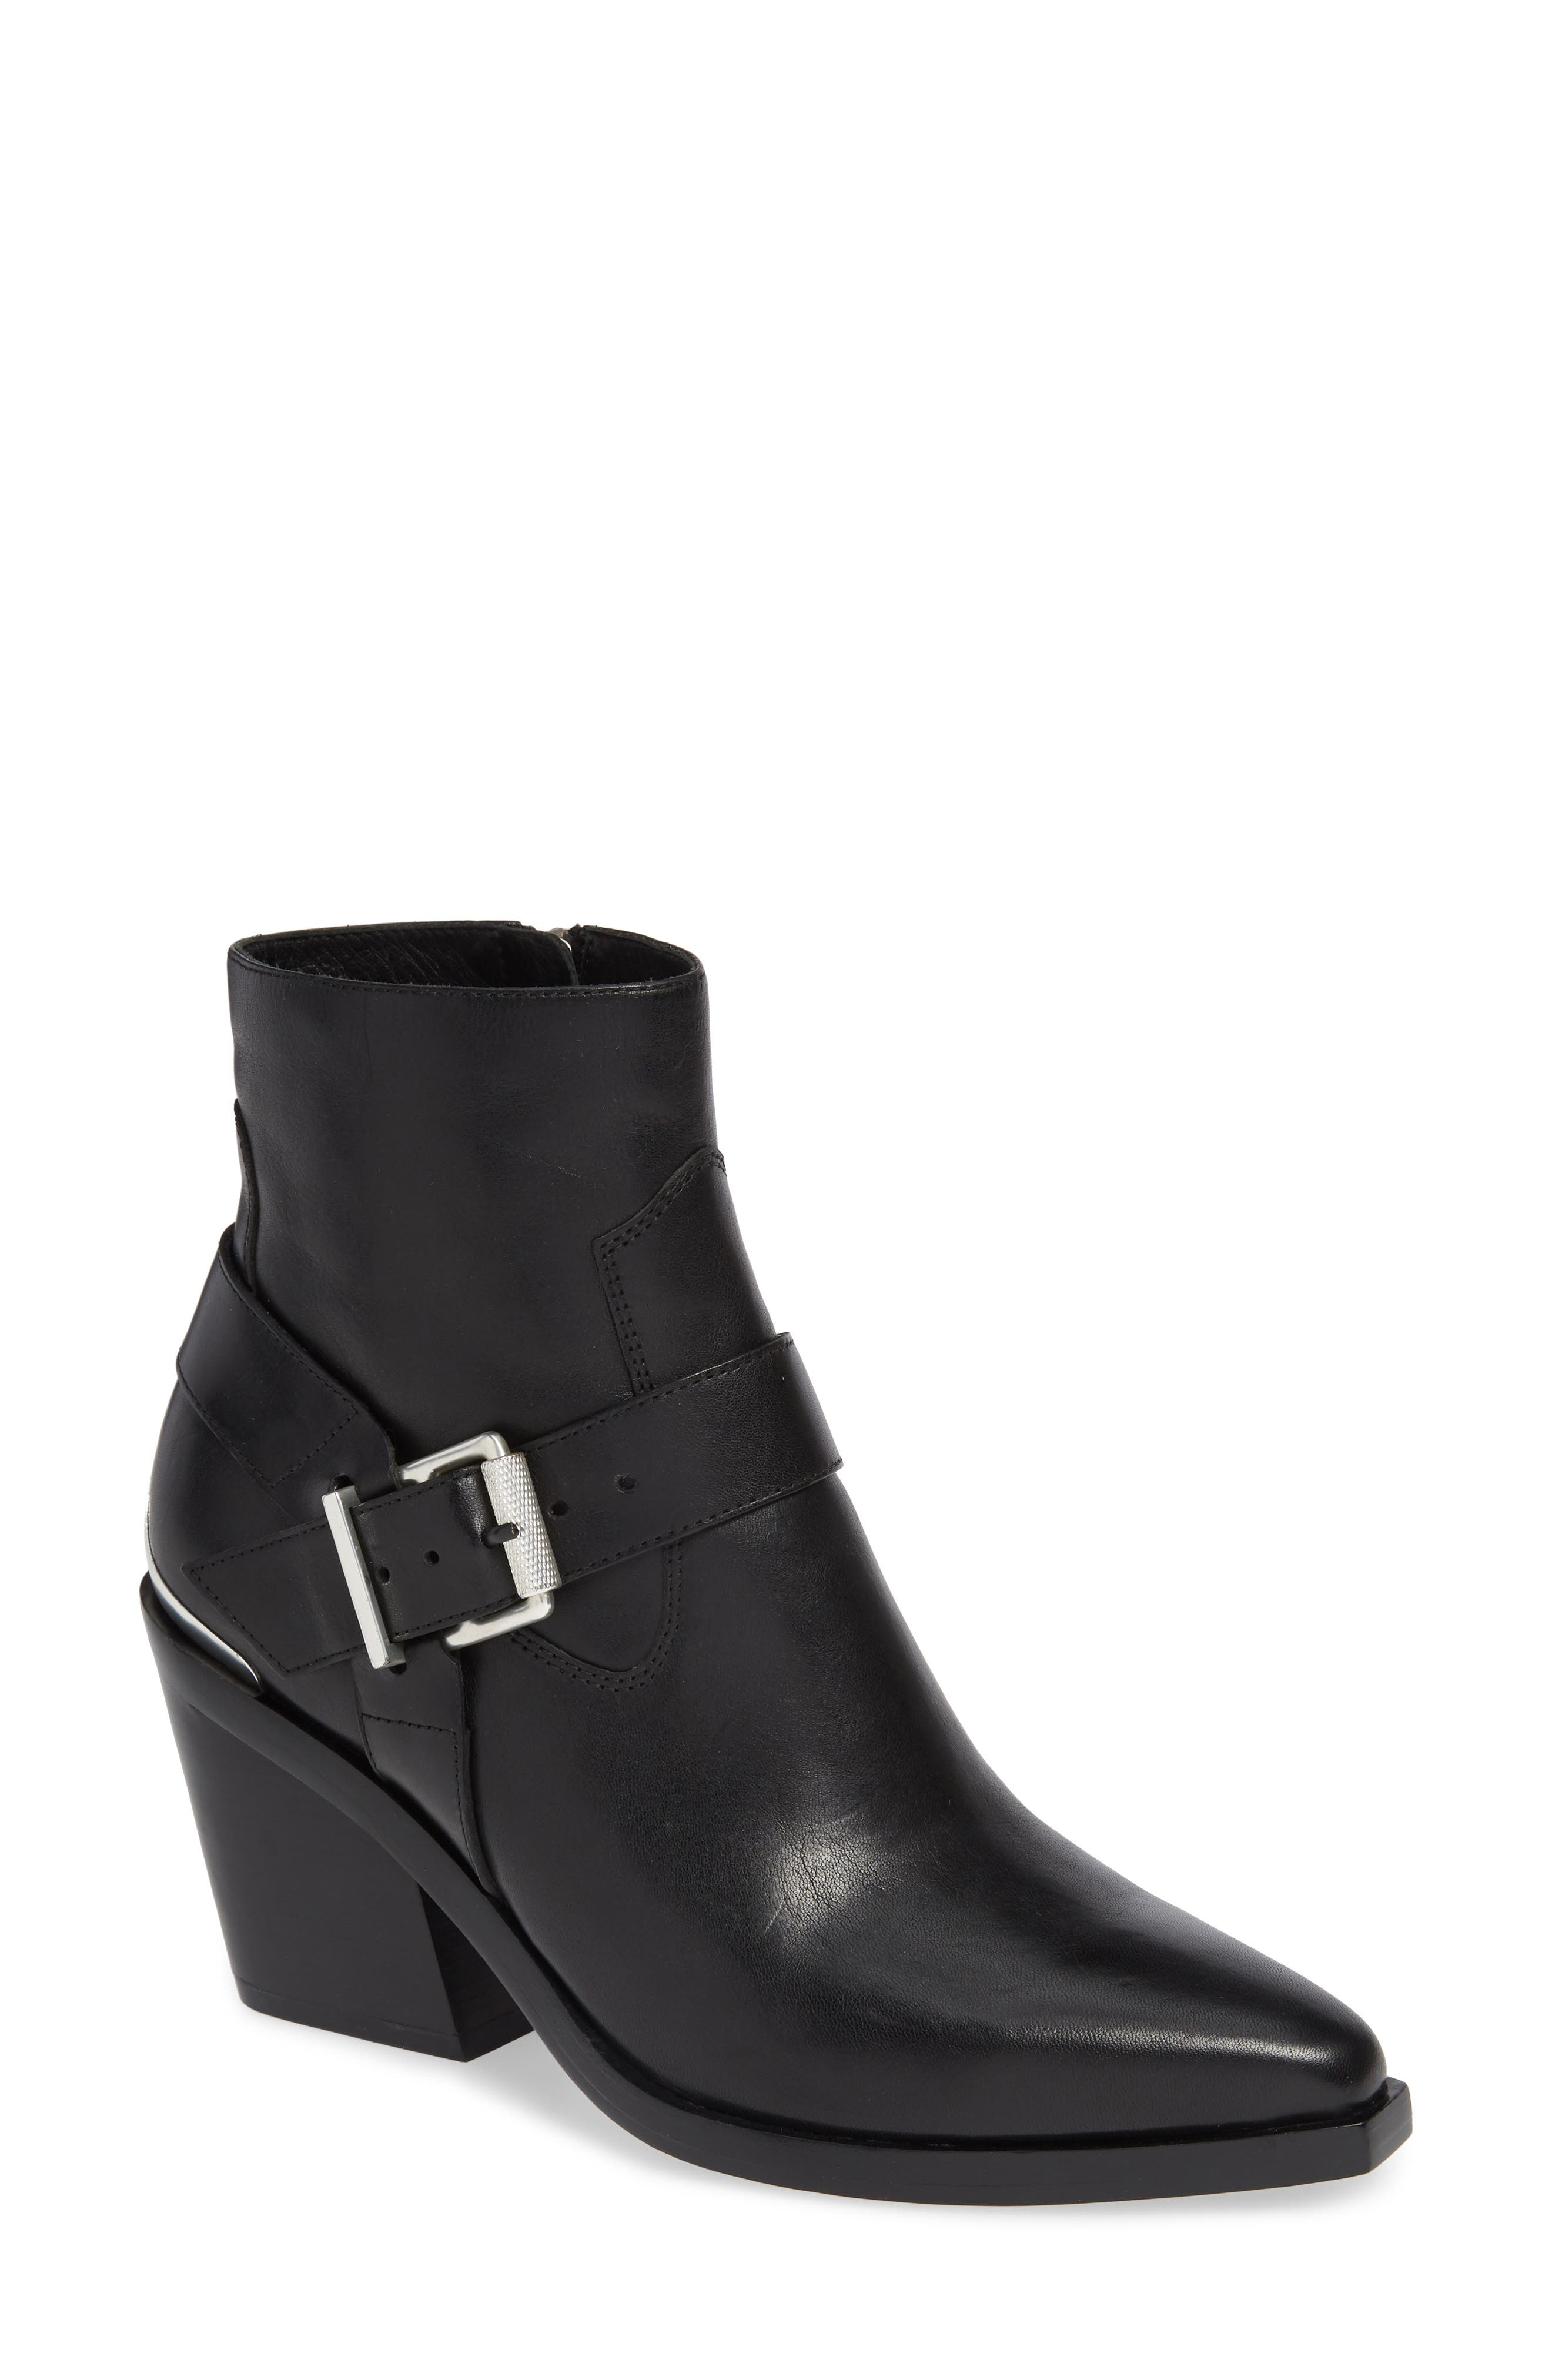 Rag & Bone Ryder Buckle Bootie, Black